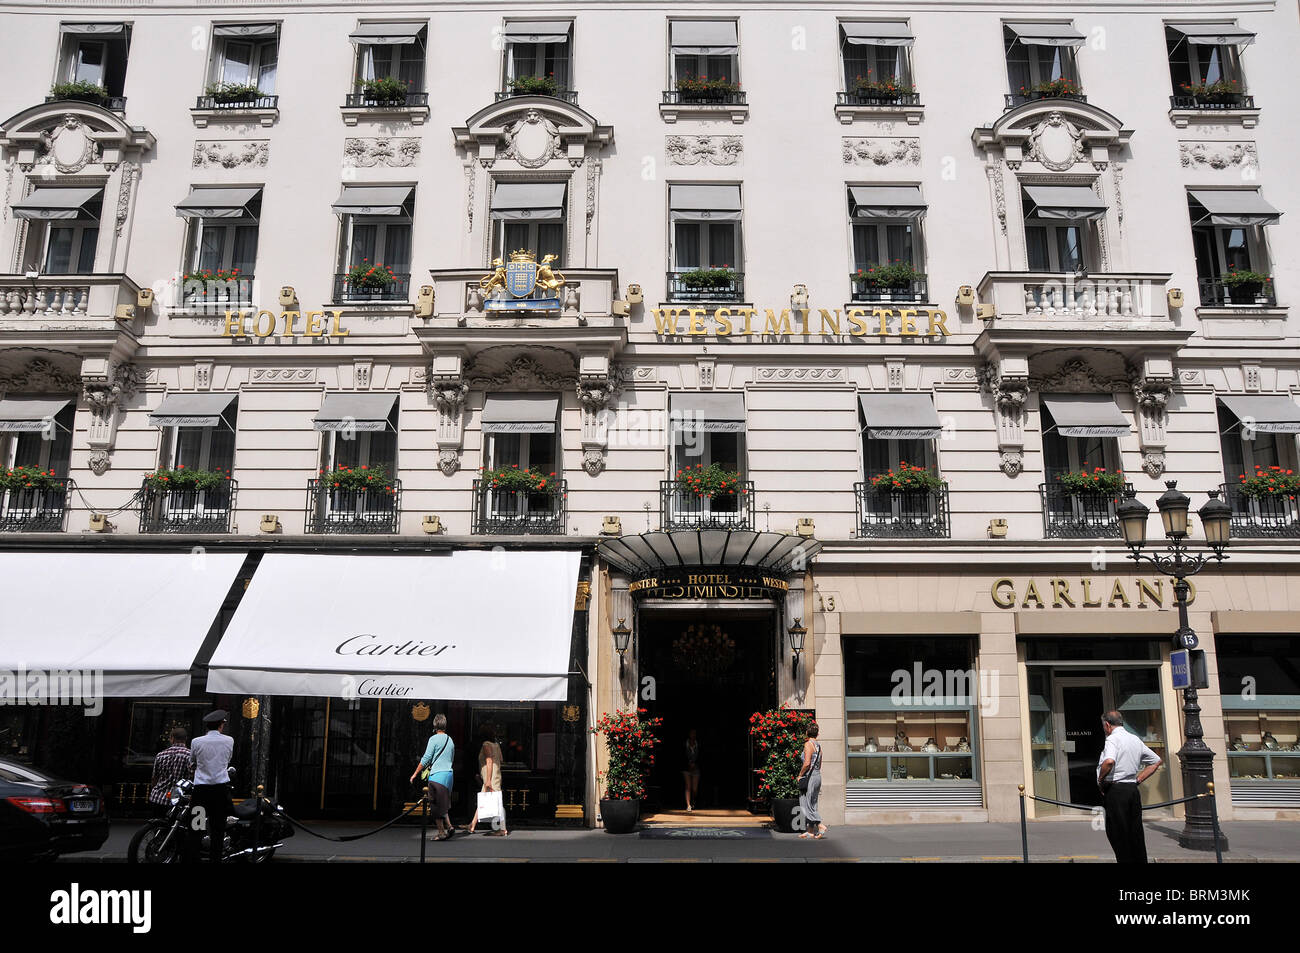 Westminster hotel, Paris, France Stock Photo: 31789427 - Alamy